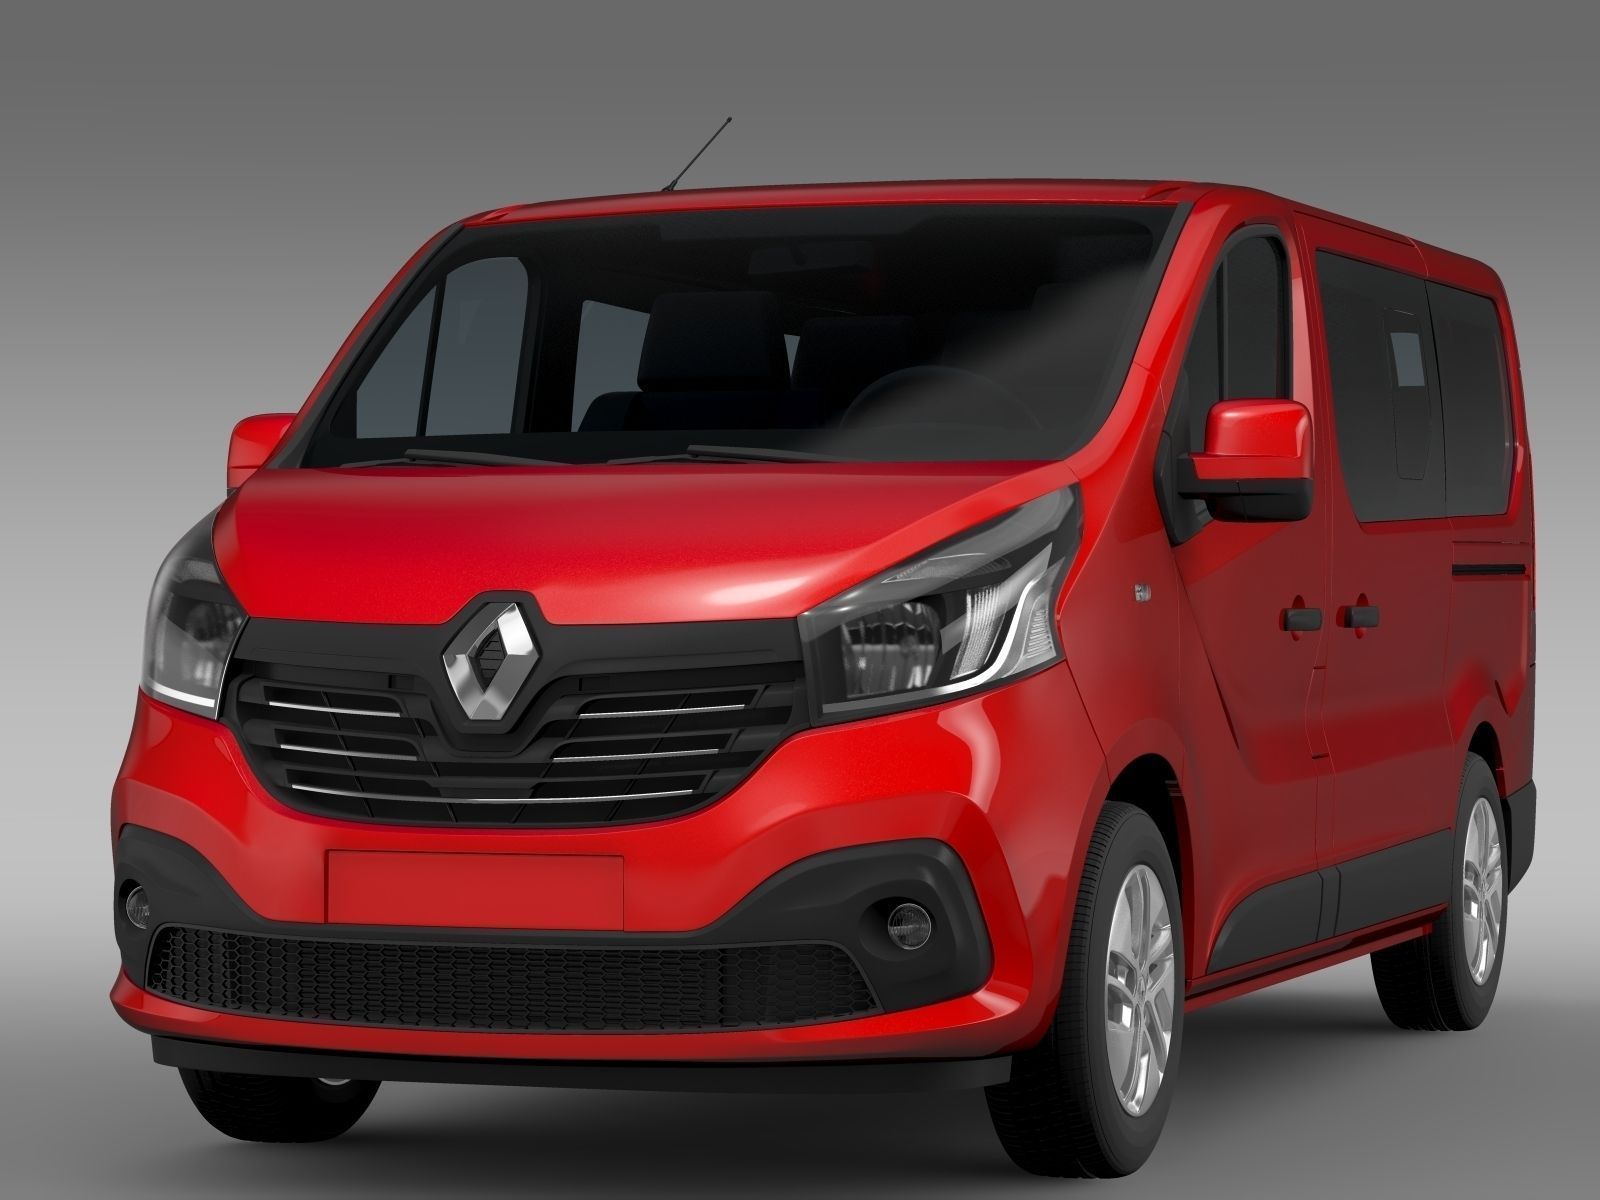 renault trafic minibus 2015 3d model max obj 3ds fbx c4d lwo lw lws. Black Bedroom Furniture Sets. Home Design Ideas